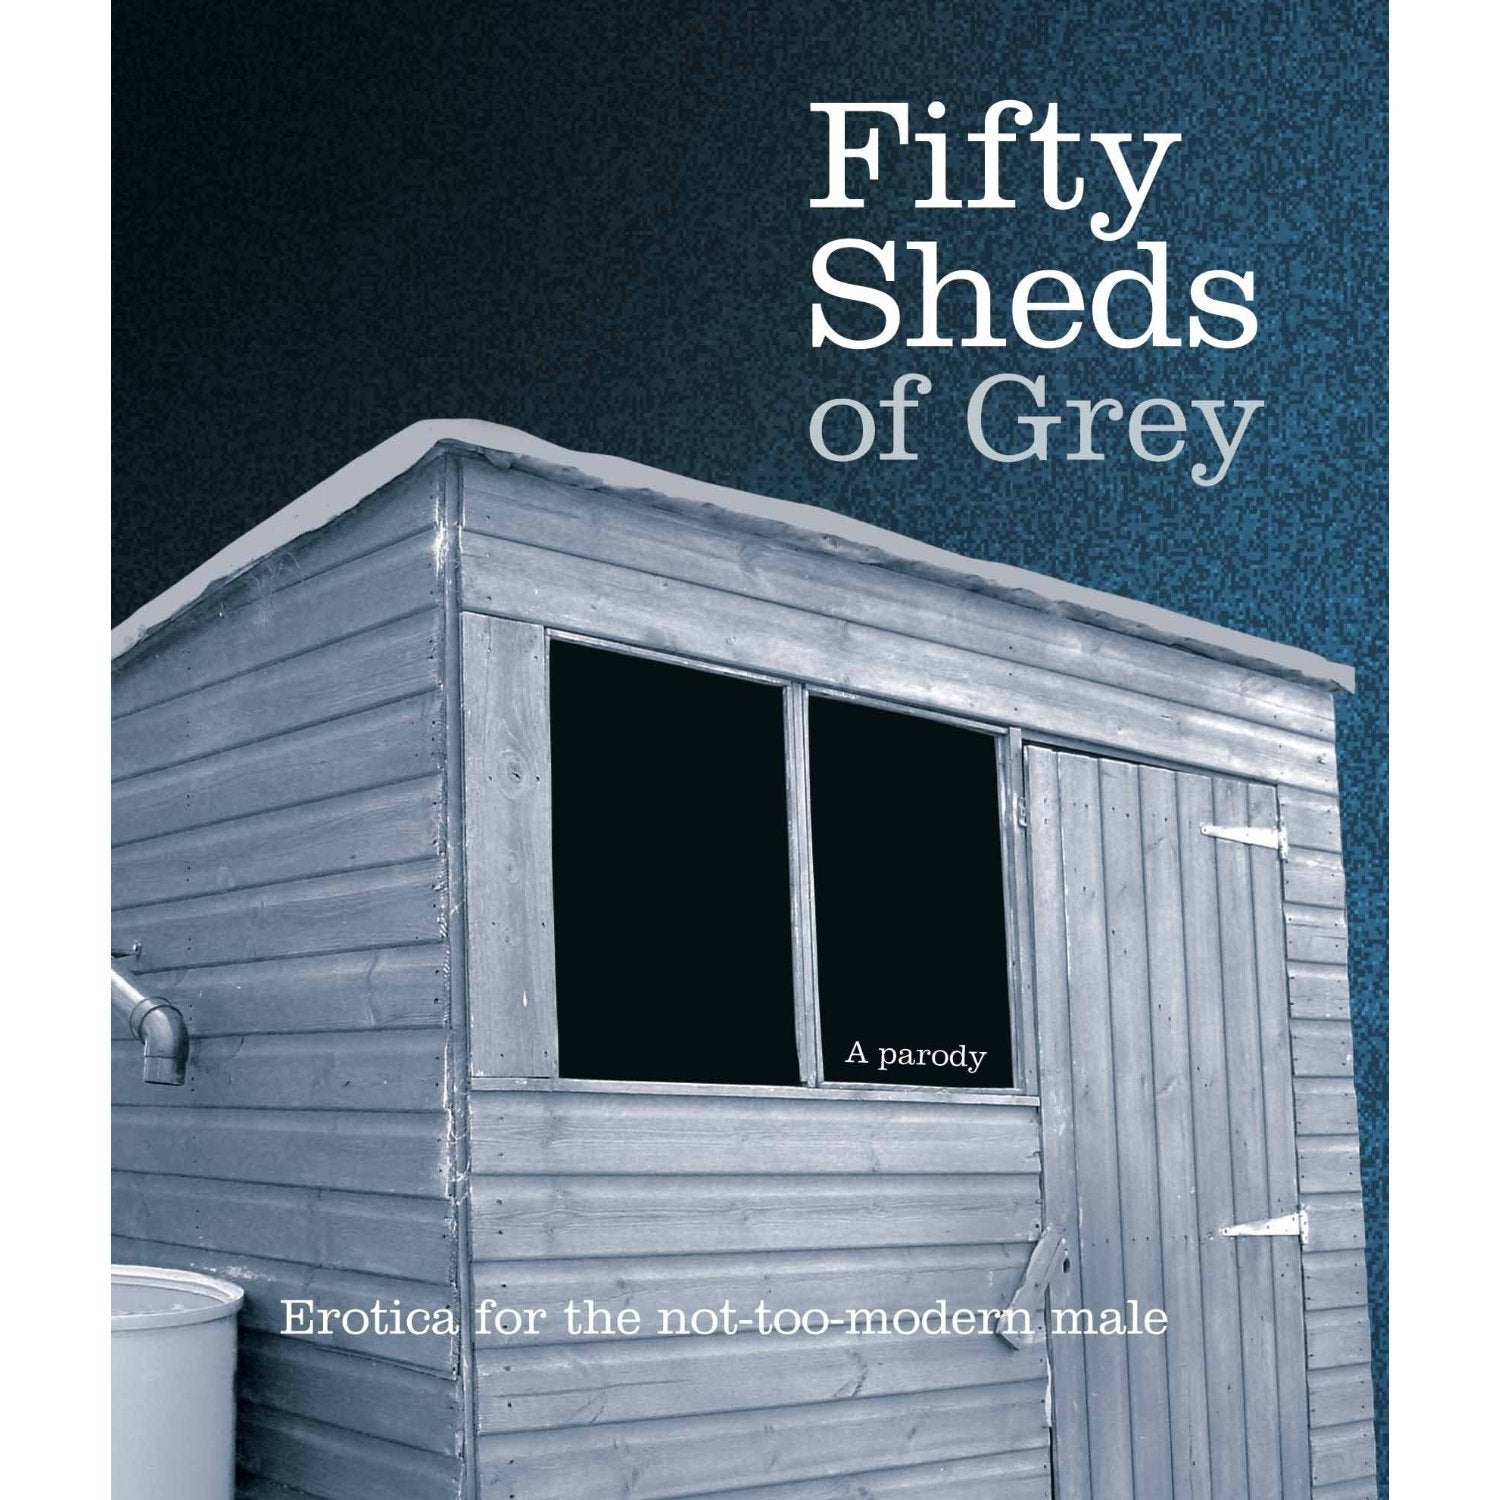 Fifty Sheds Of Grey - - 0 - Yellow Octopus